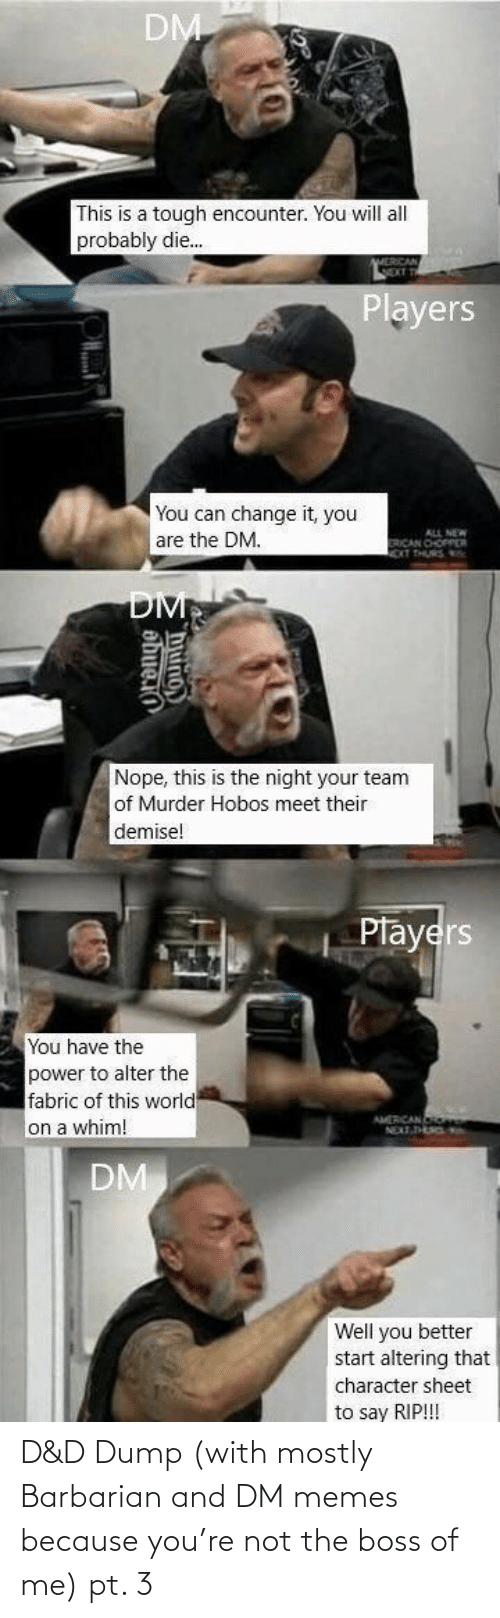 With: D&D Dump (with mostly Barbarian and DM memes because you're not the boss of me) pt. 3